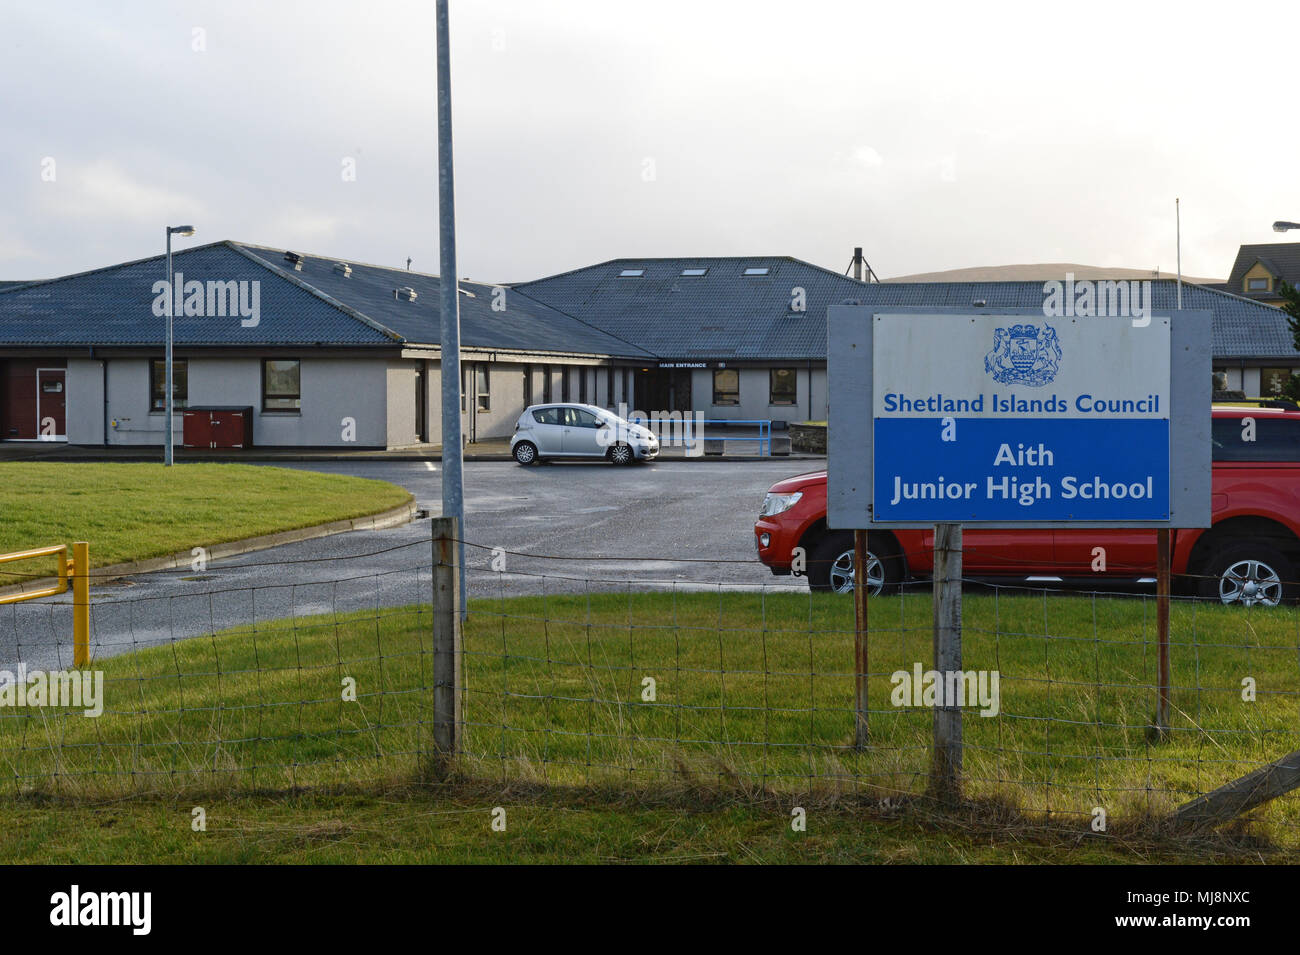 Aith Junior High School on the Shetland Islands - Stock Image